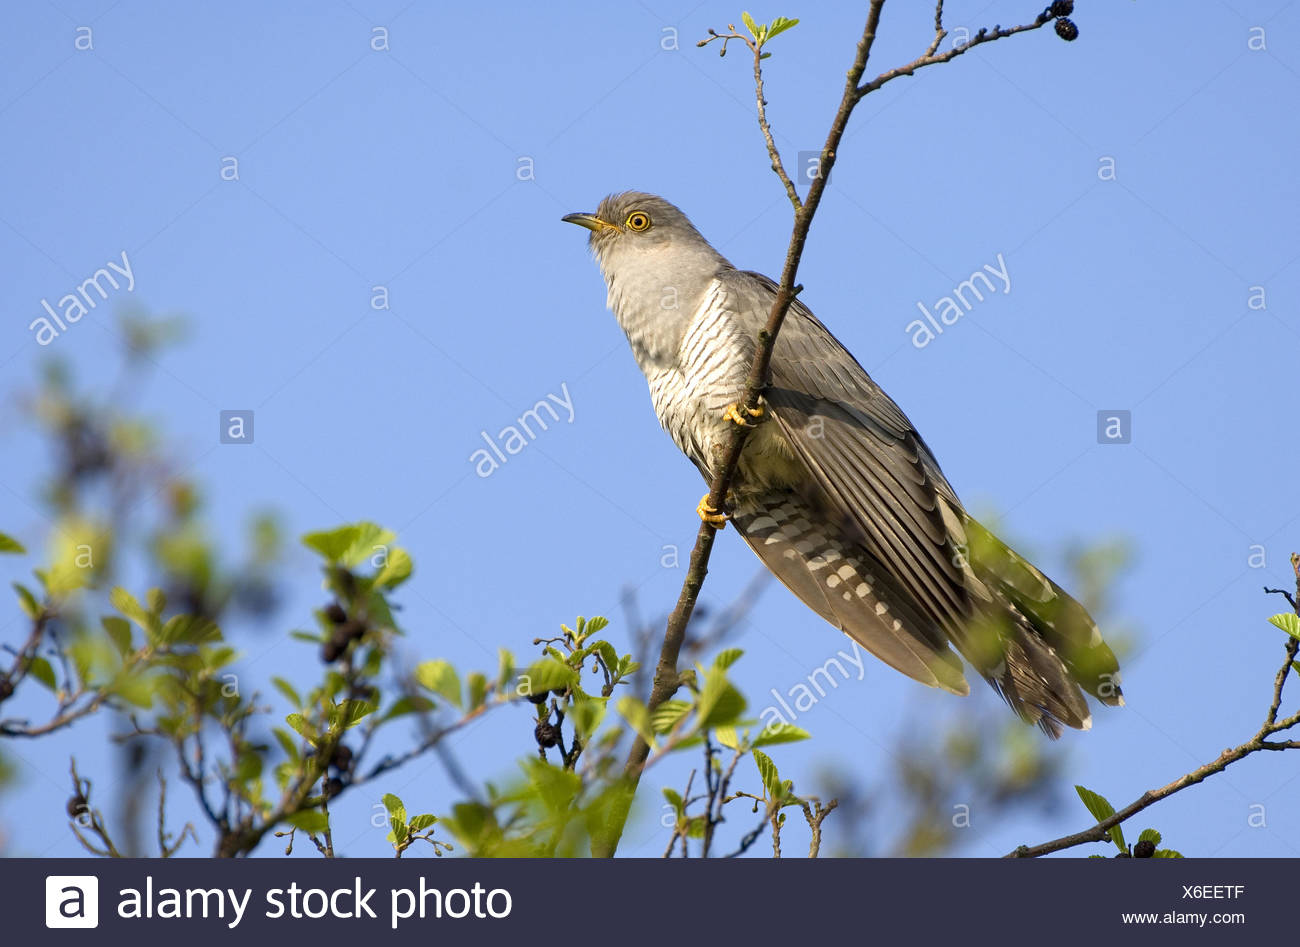 Common Cuckoo / (Cuculus canorus) - Stock Image